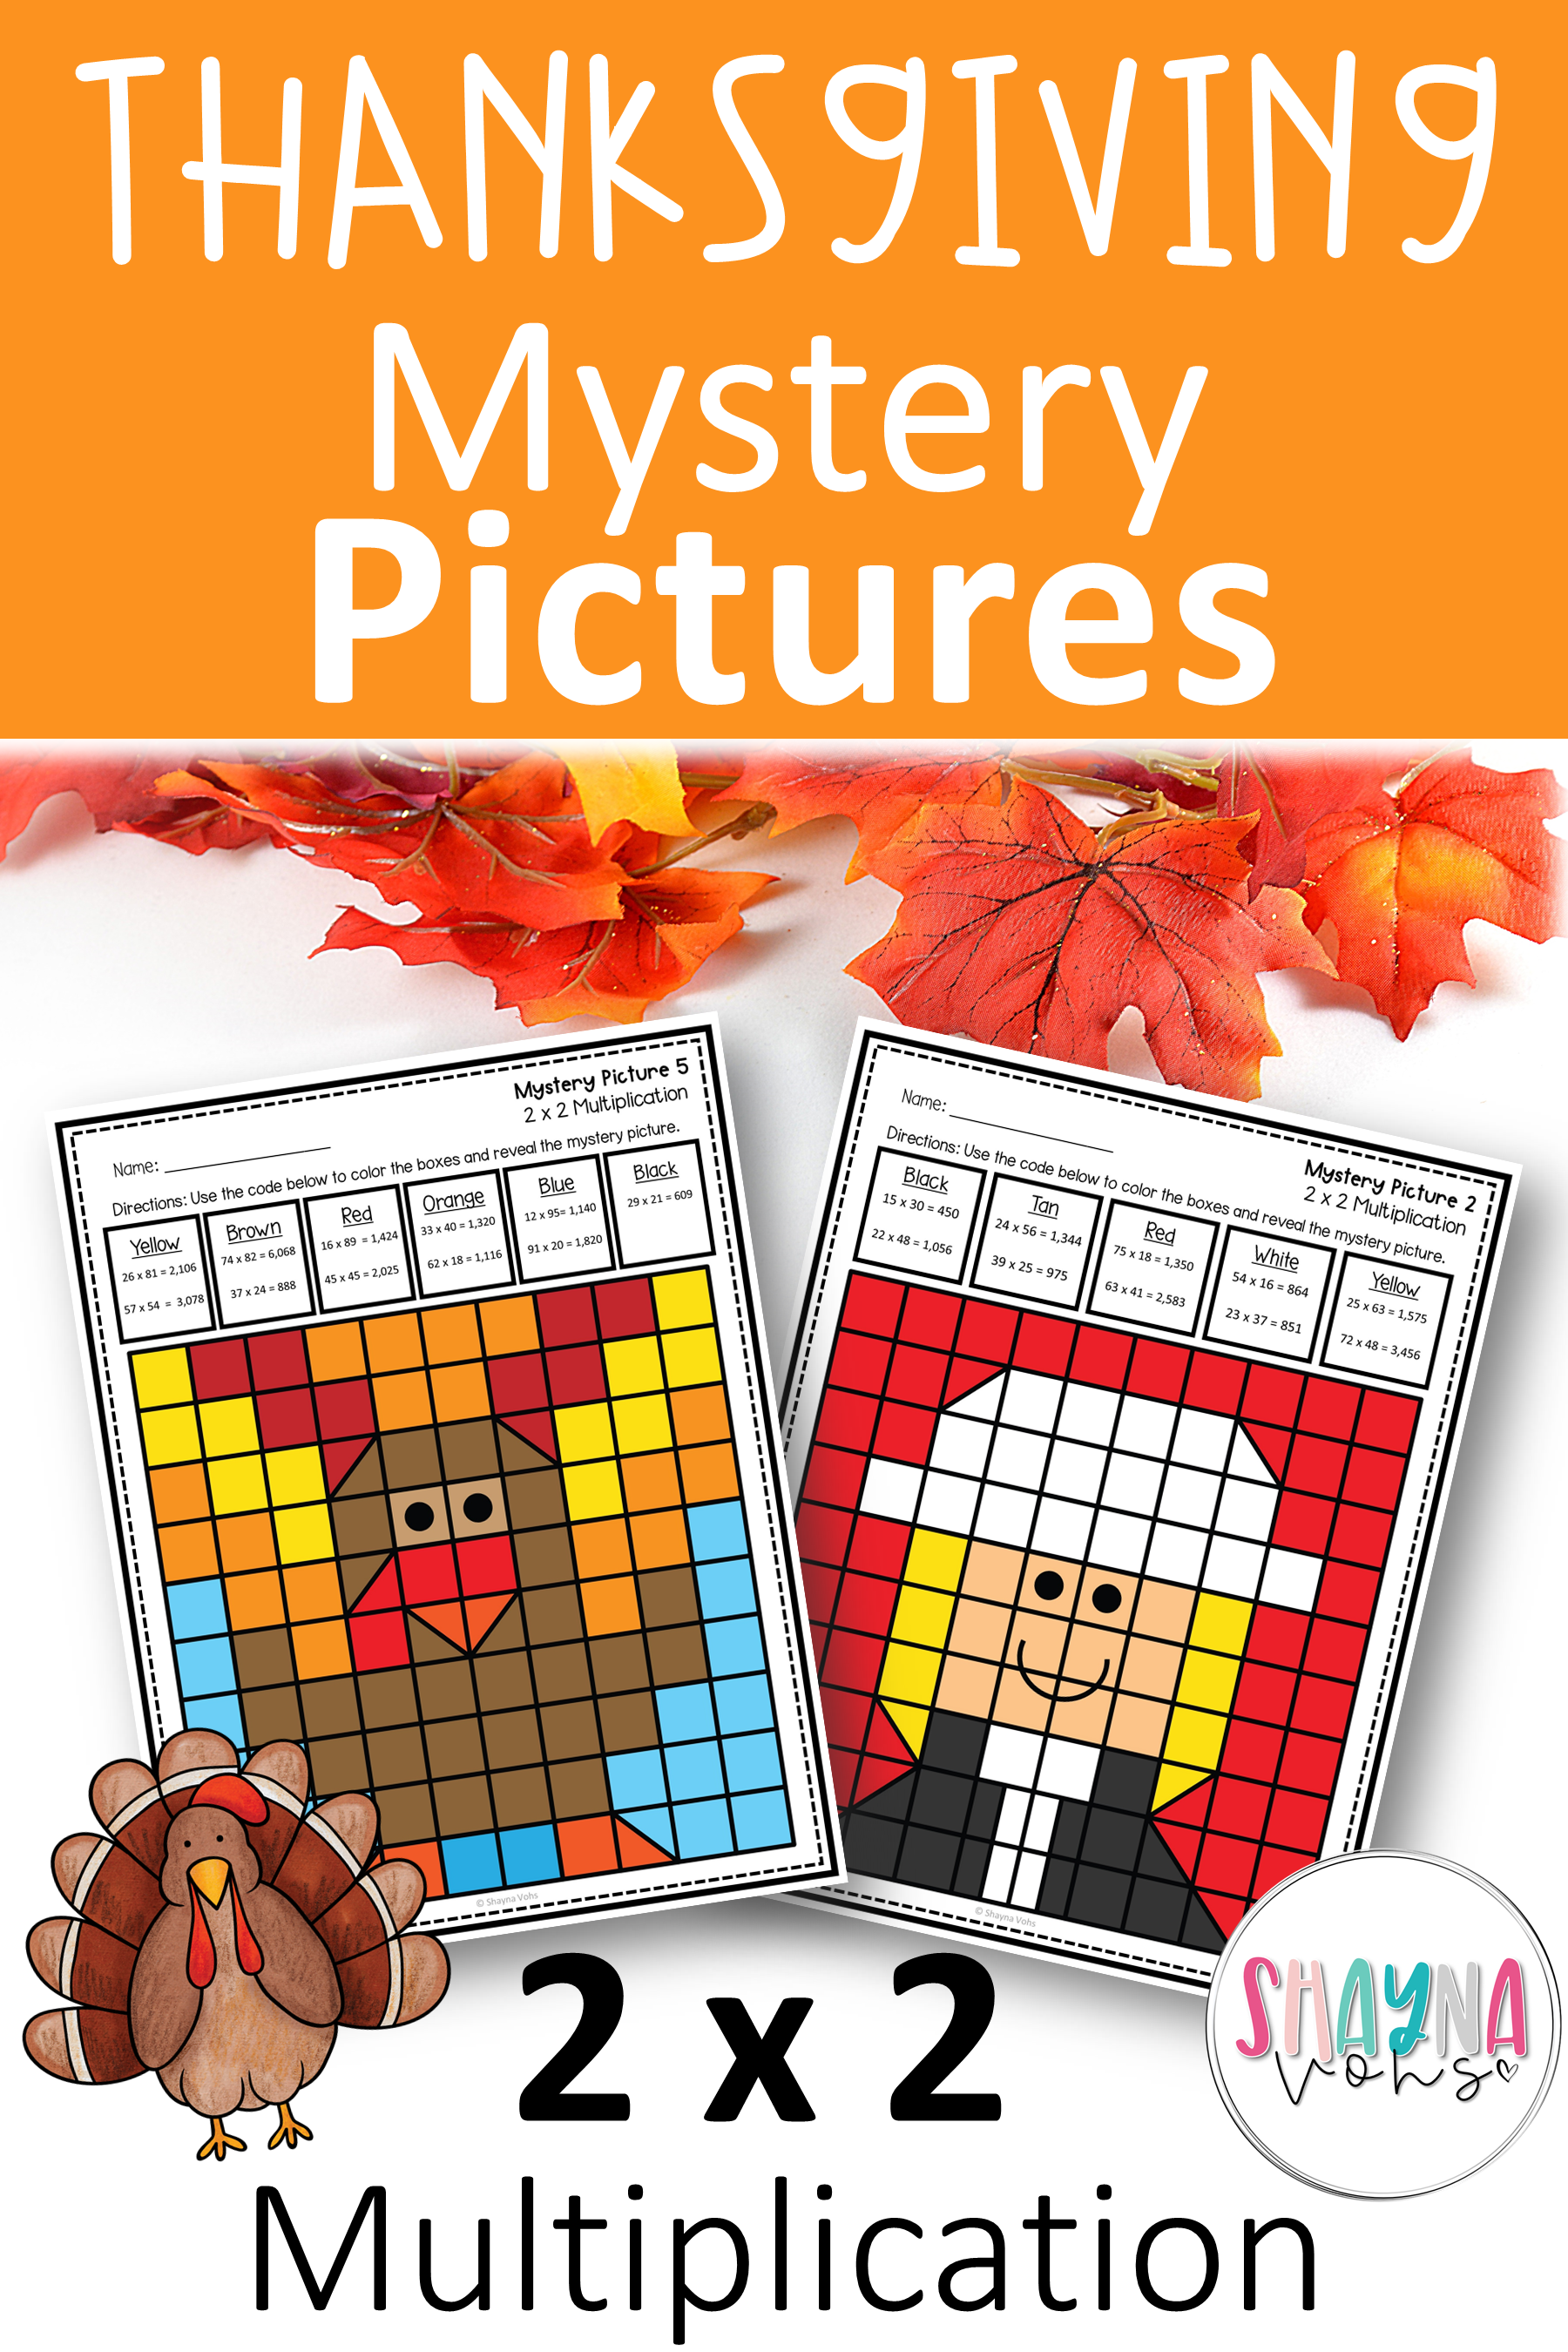 2 By 2 Multiplication Mystery Pictures